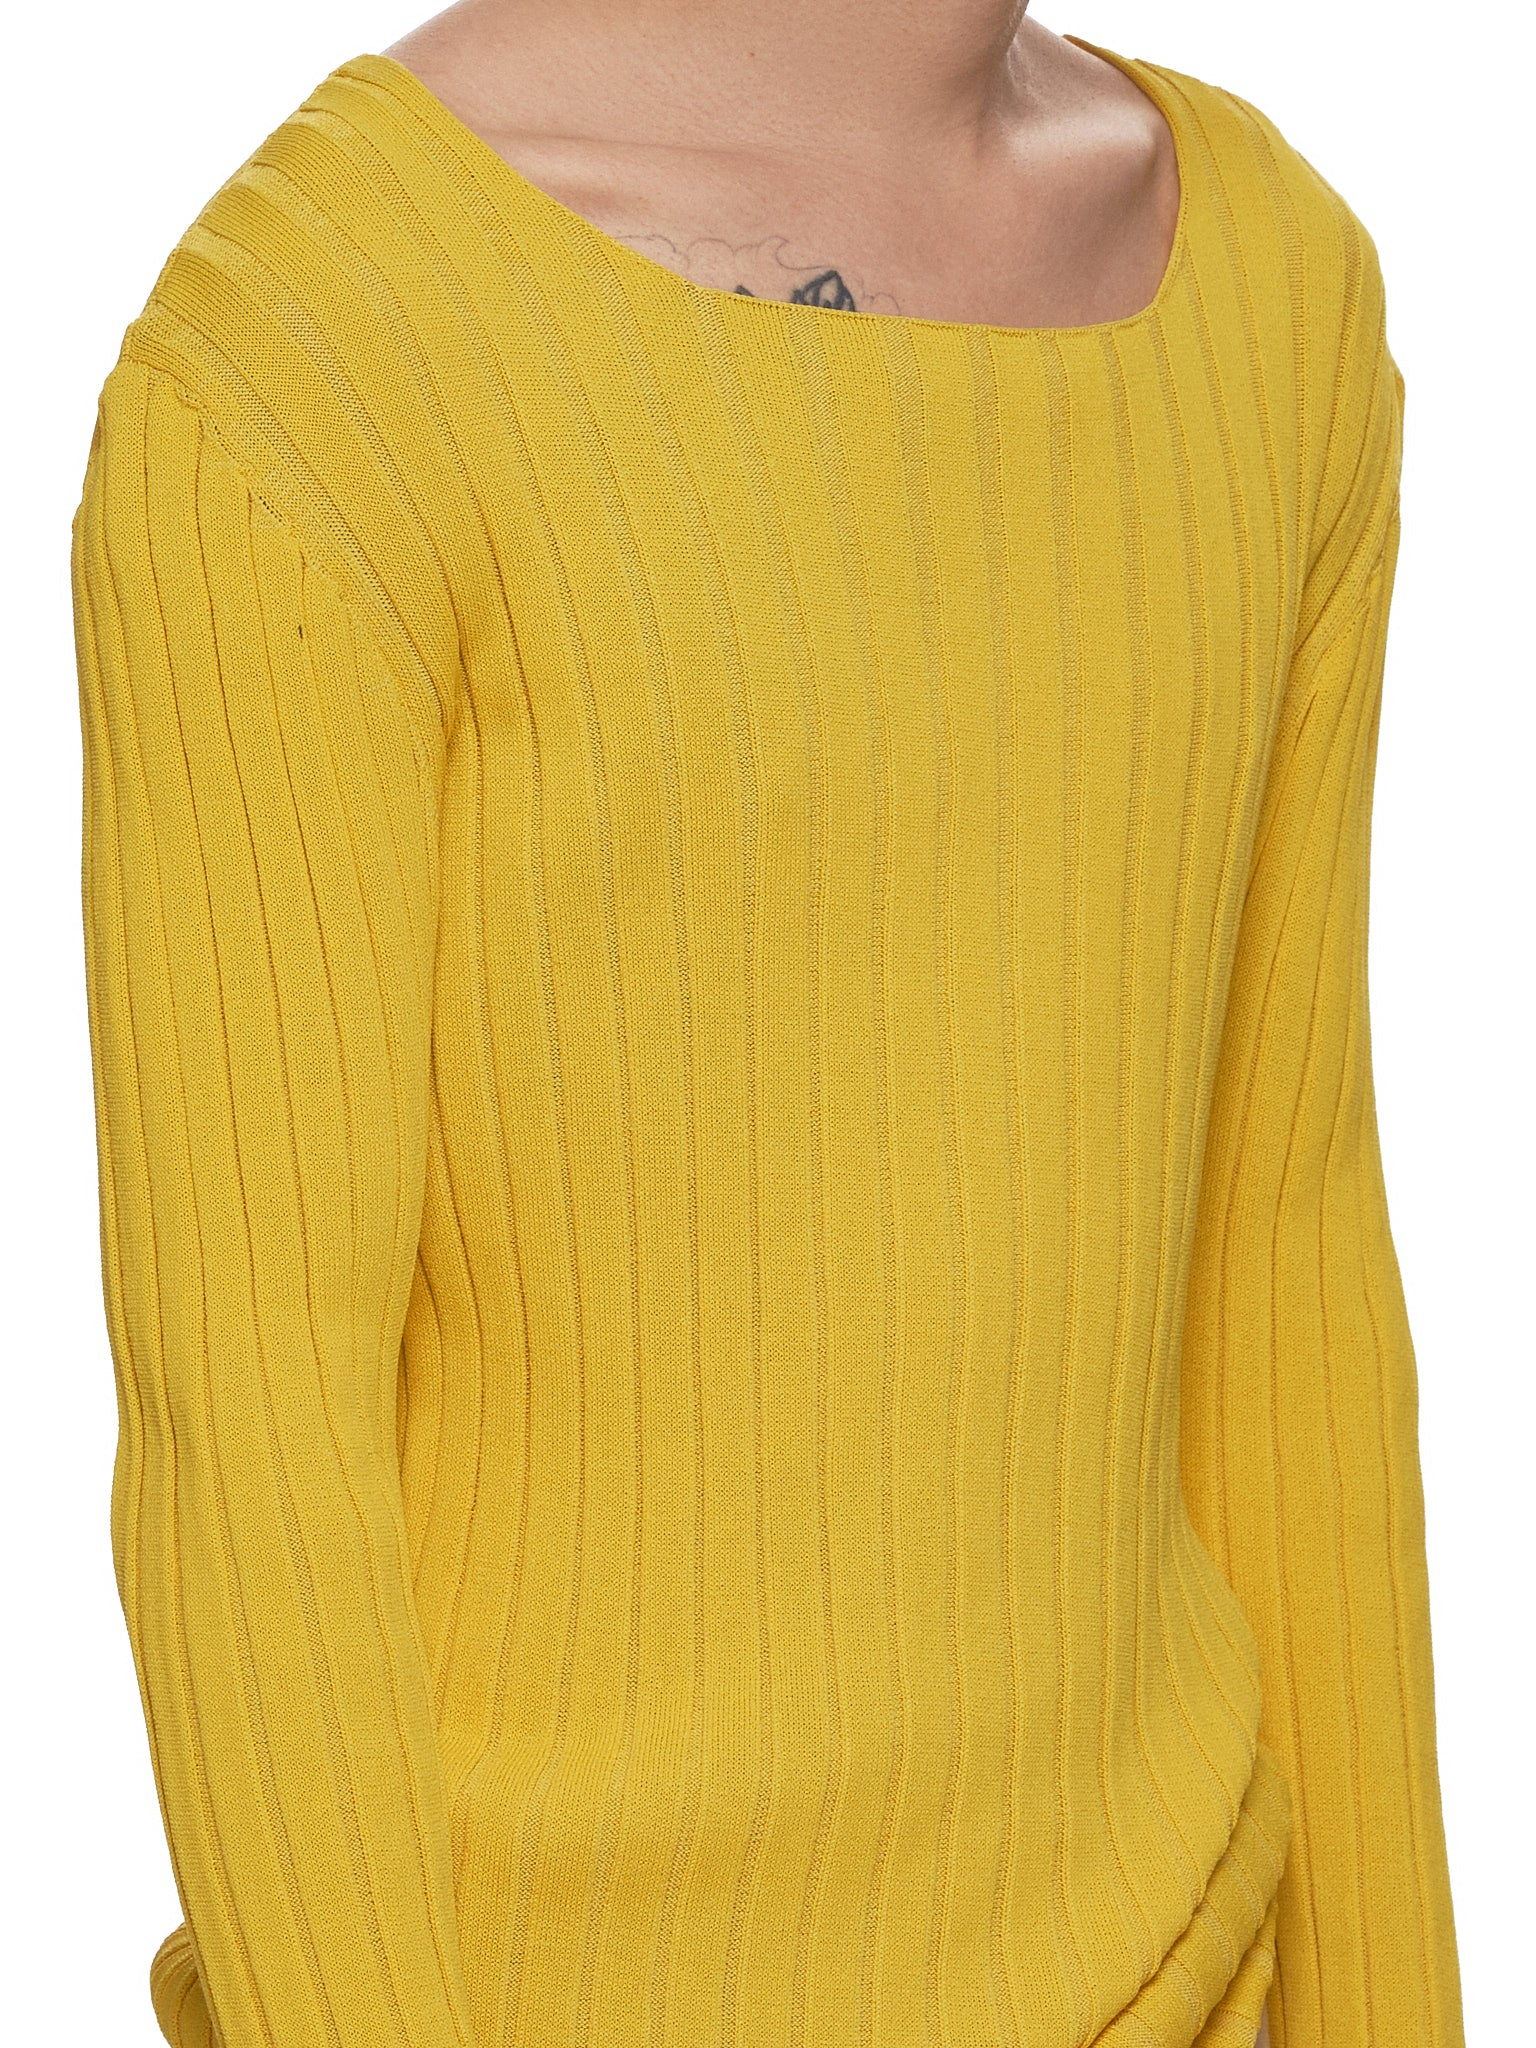 Ludovic de Saint Sernin Sweater - Hlorenzo Detail 1